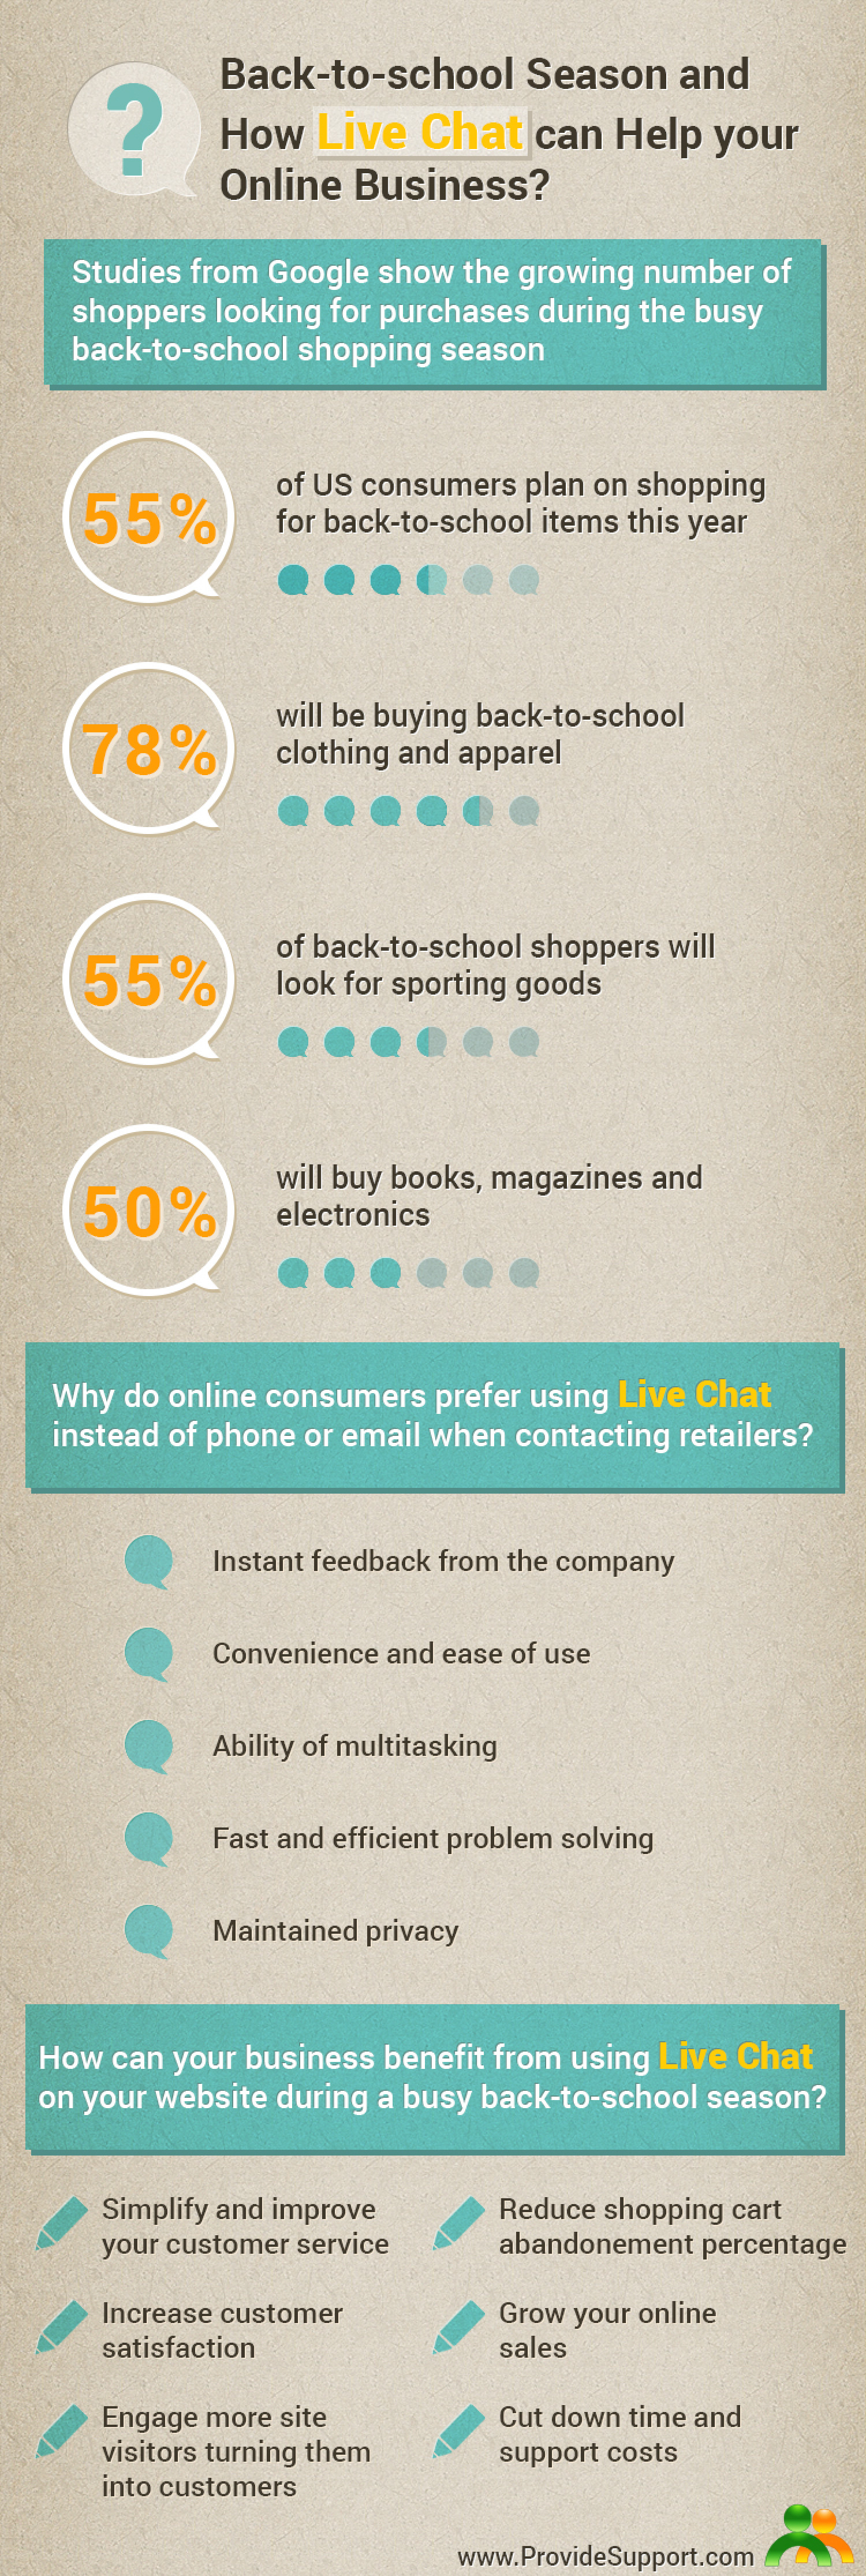 Back-to-school Season and How Live Chat can Help your Online Business  Infographic